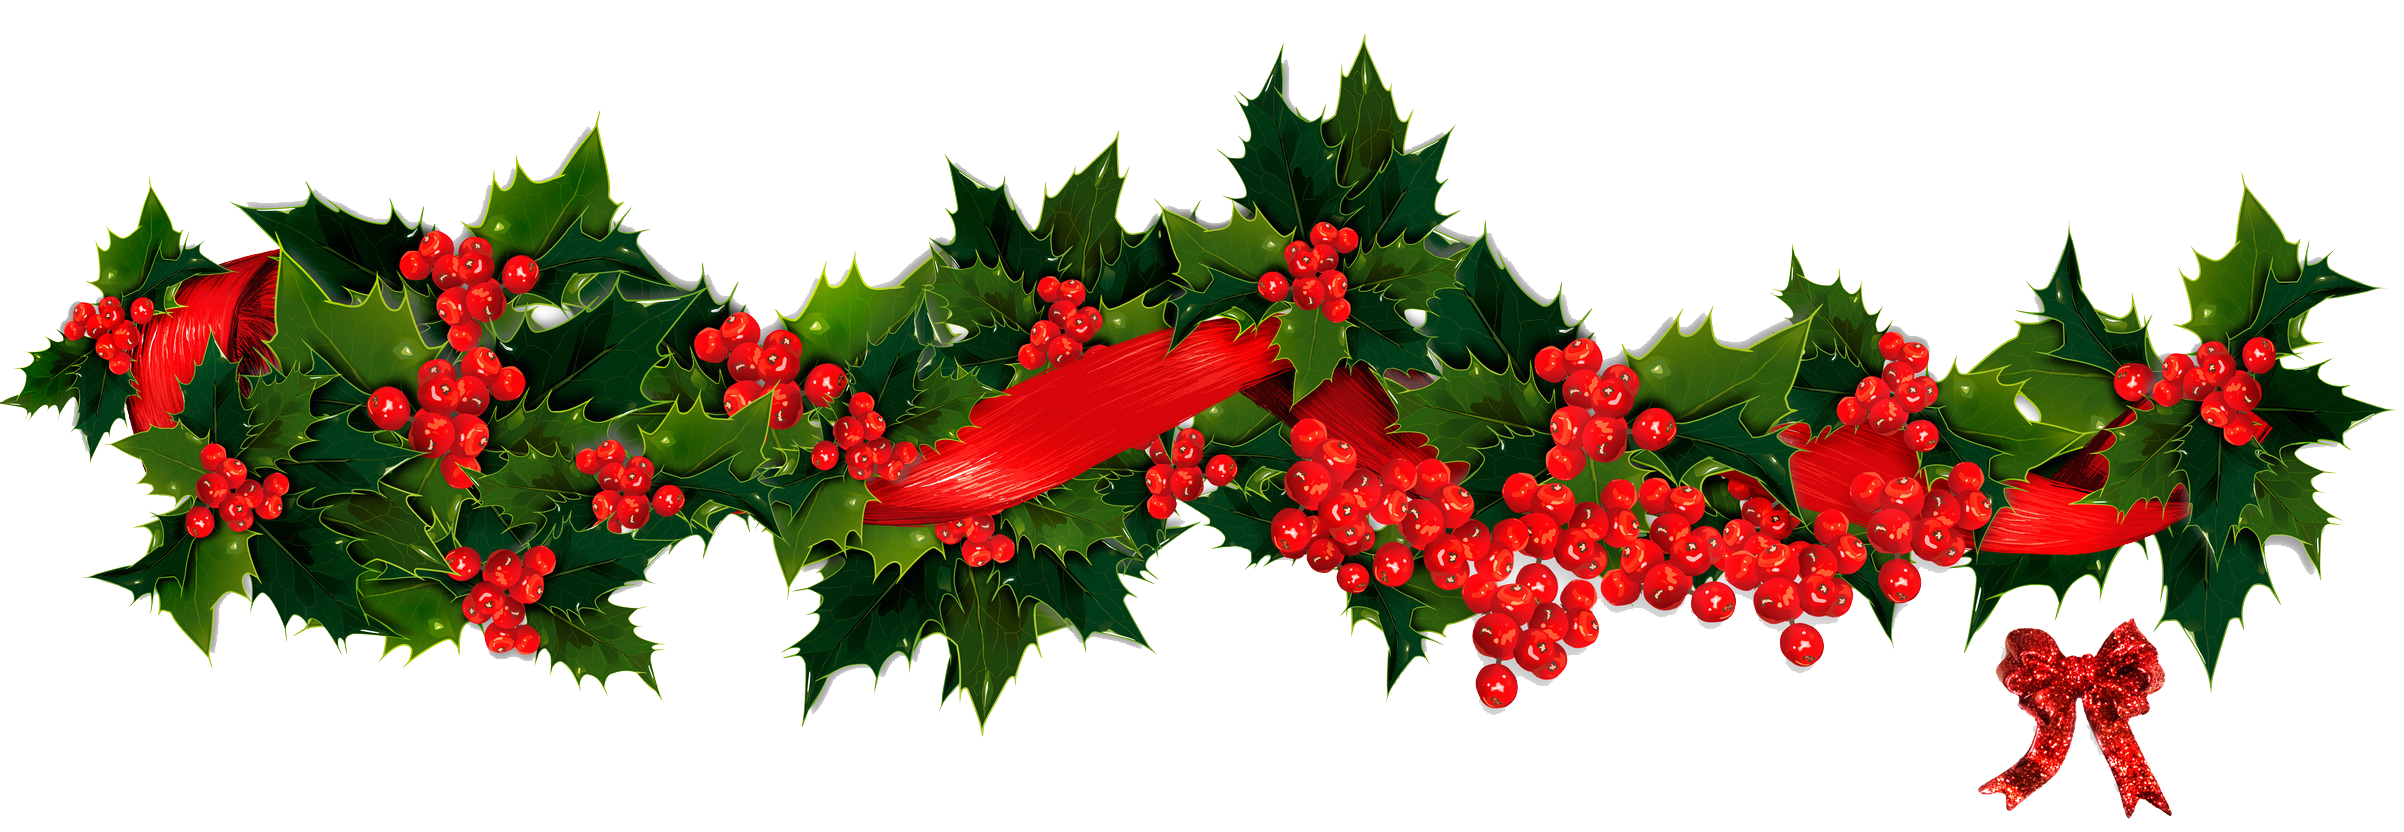 Christmas Wreath Png.Christmas Wreath Pictures Free Download Best Christmas